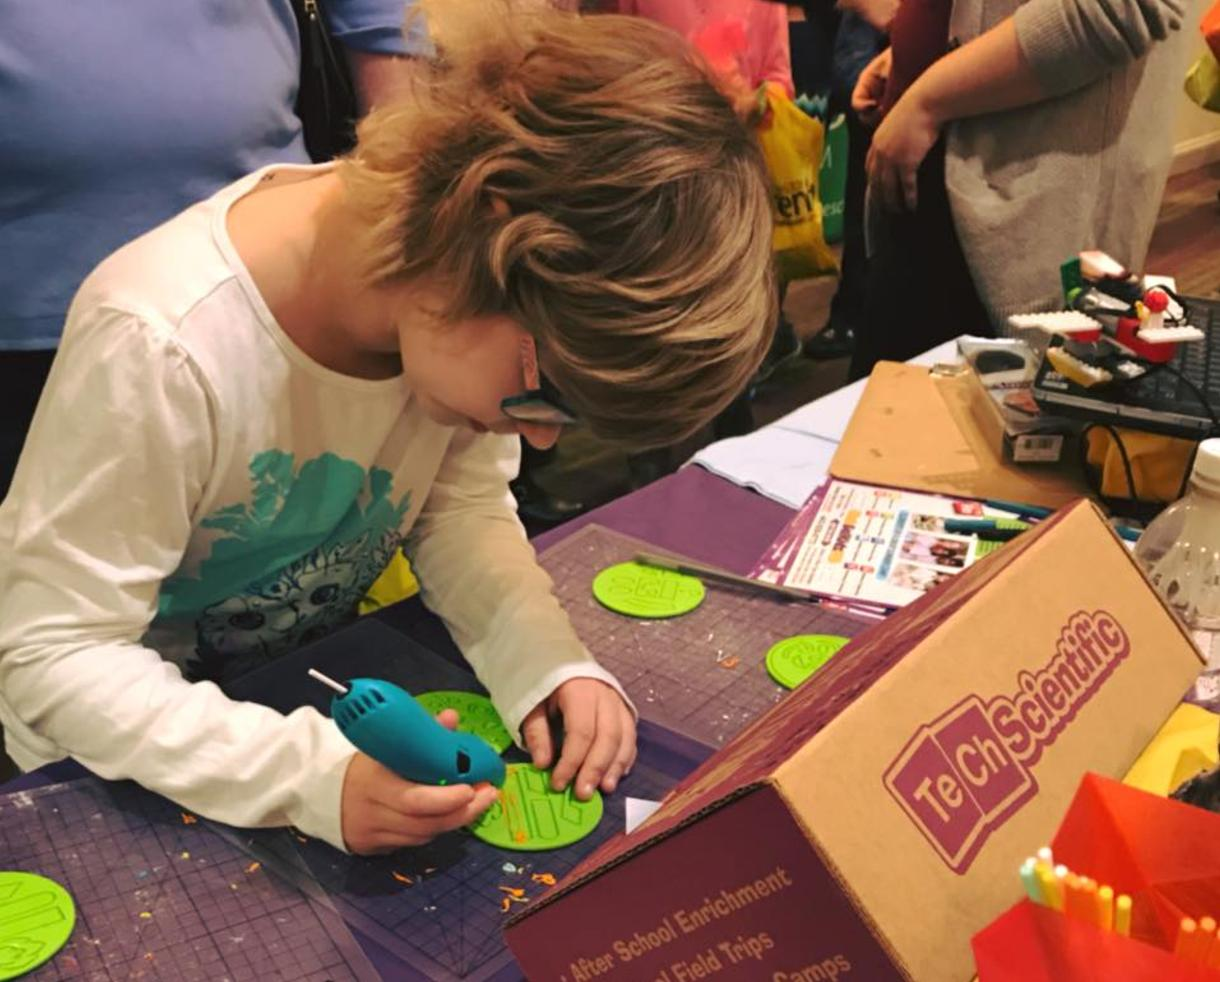 Club SciKidz Science & Technology Camps